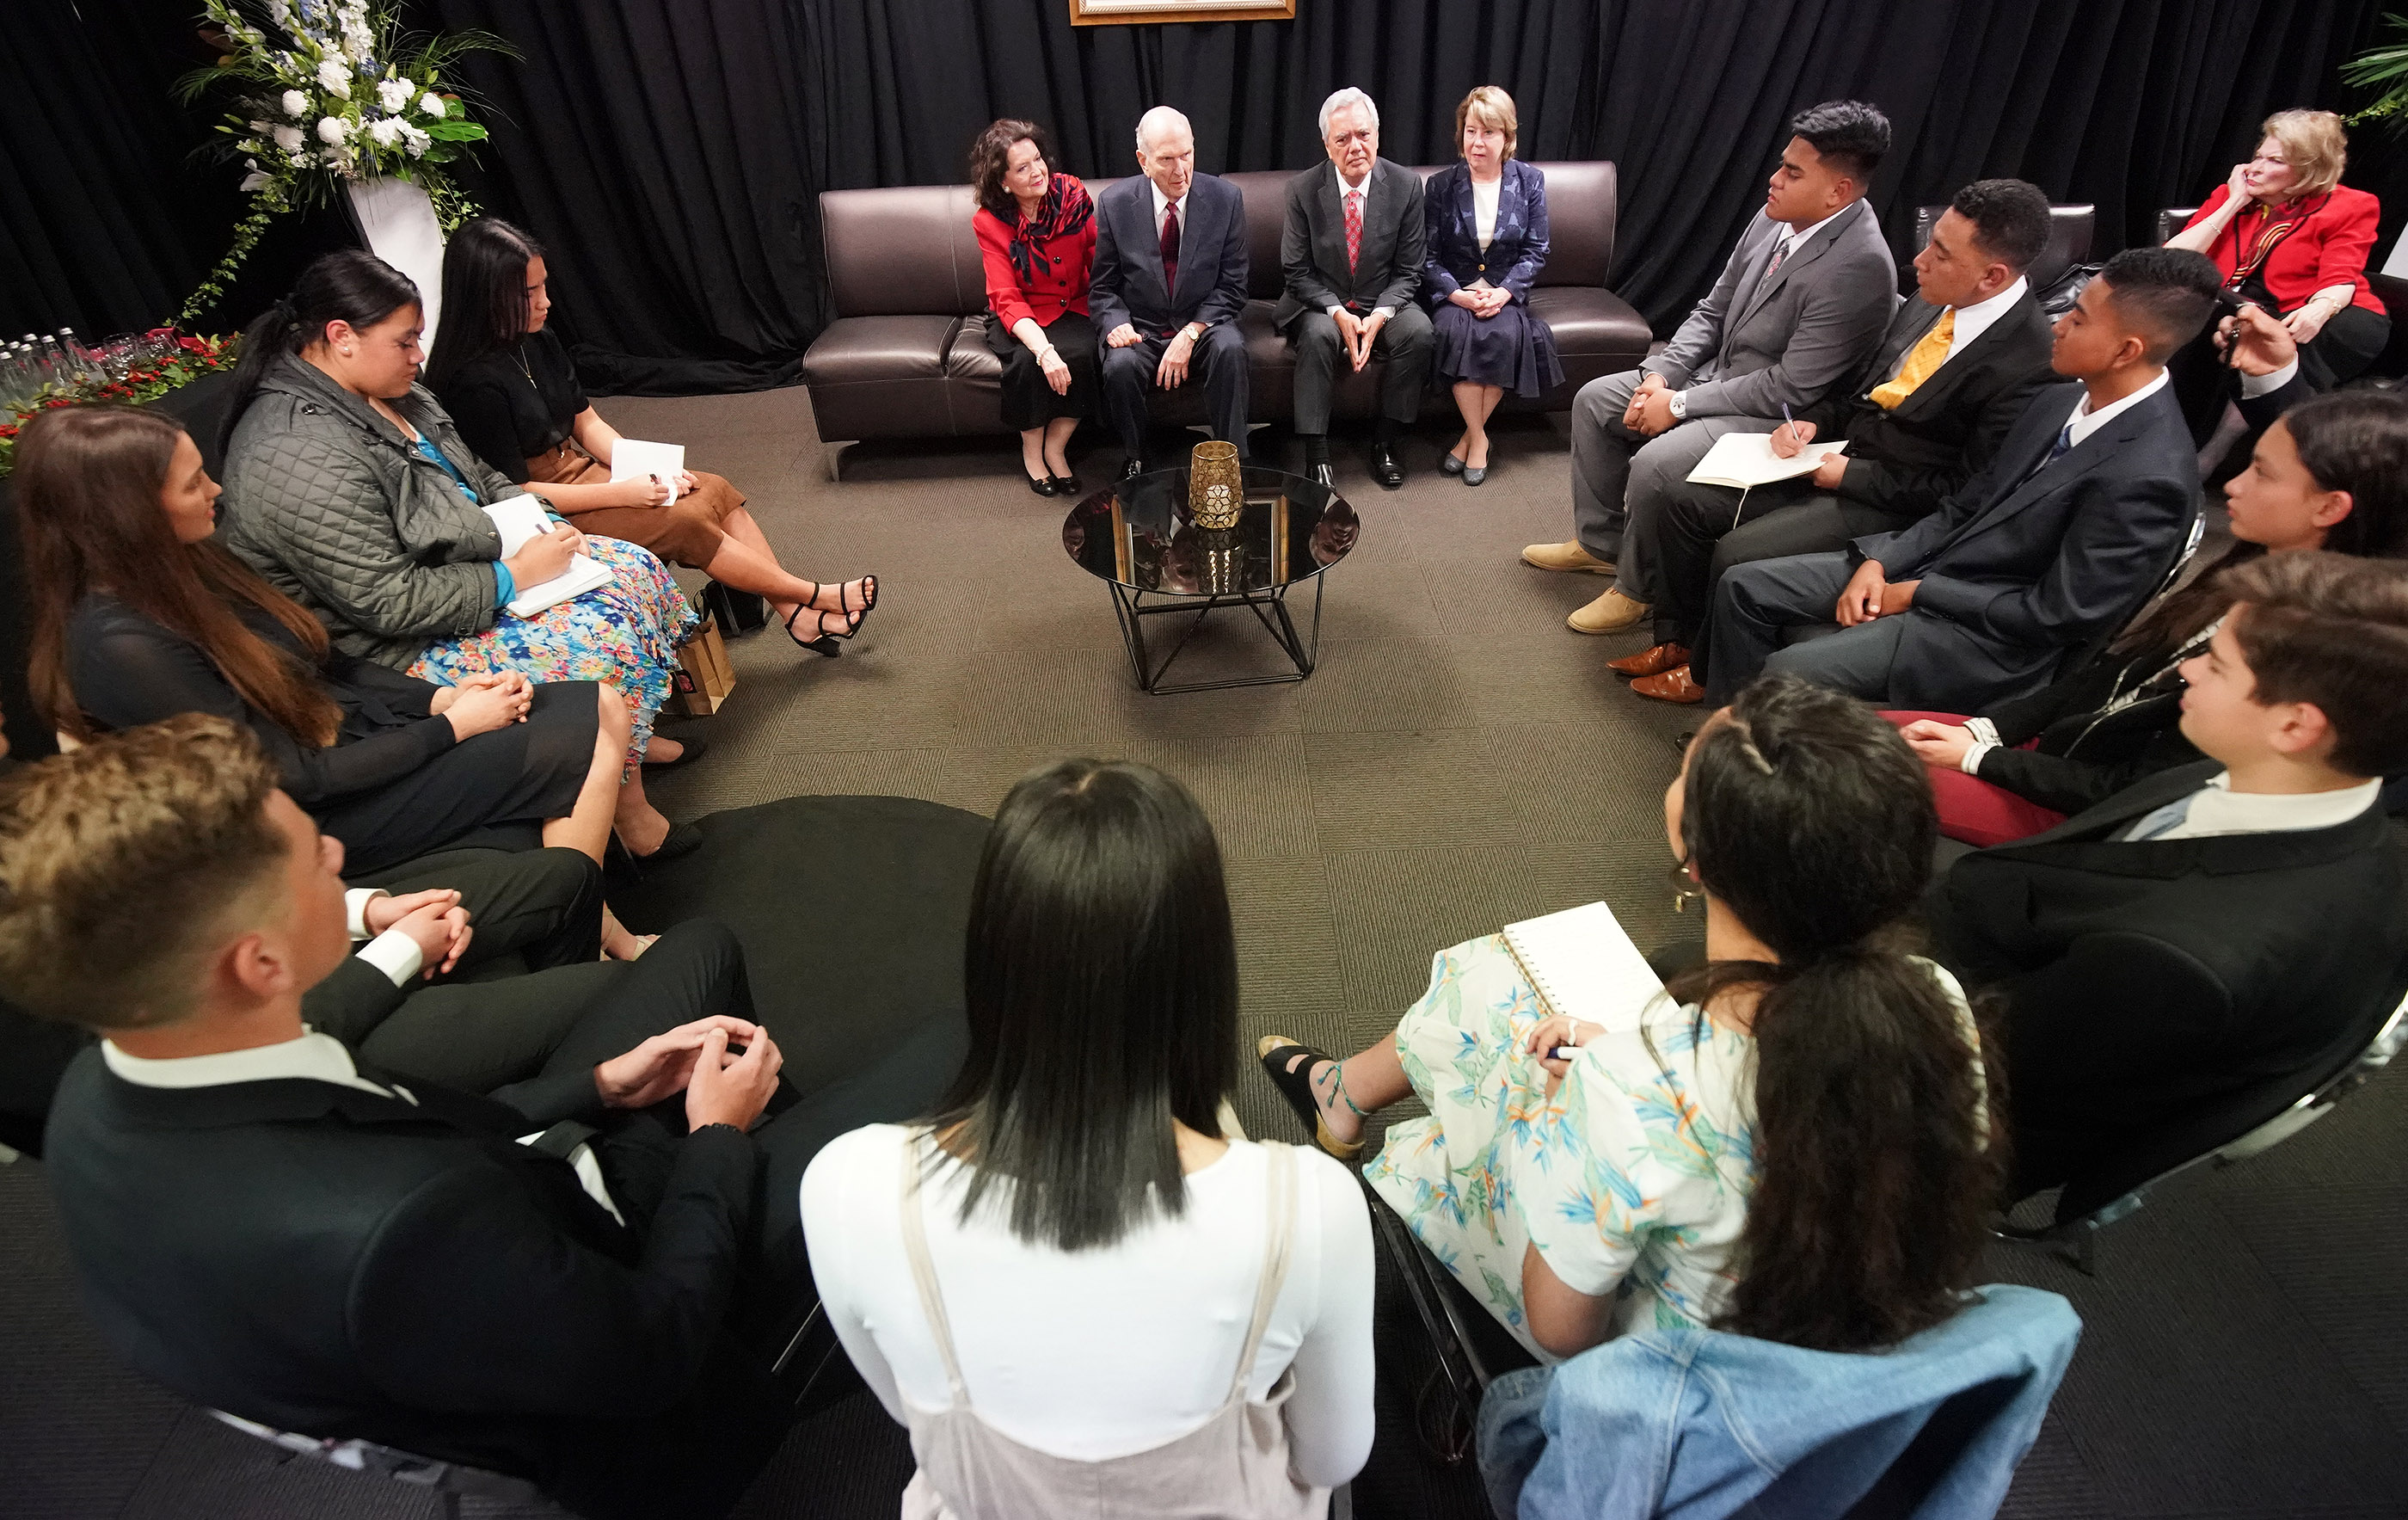 President Russell M. Nelson of The Church of Jesus Christ of Latter-day Saints meets with youth in Auckland, New Zealand, on May 21, 2019.